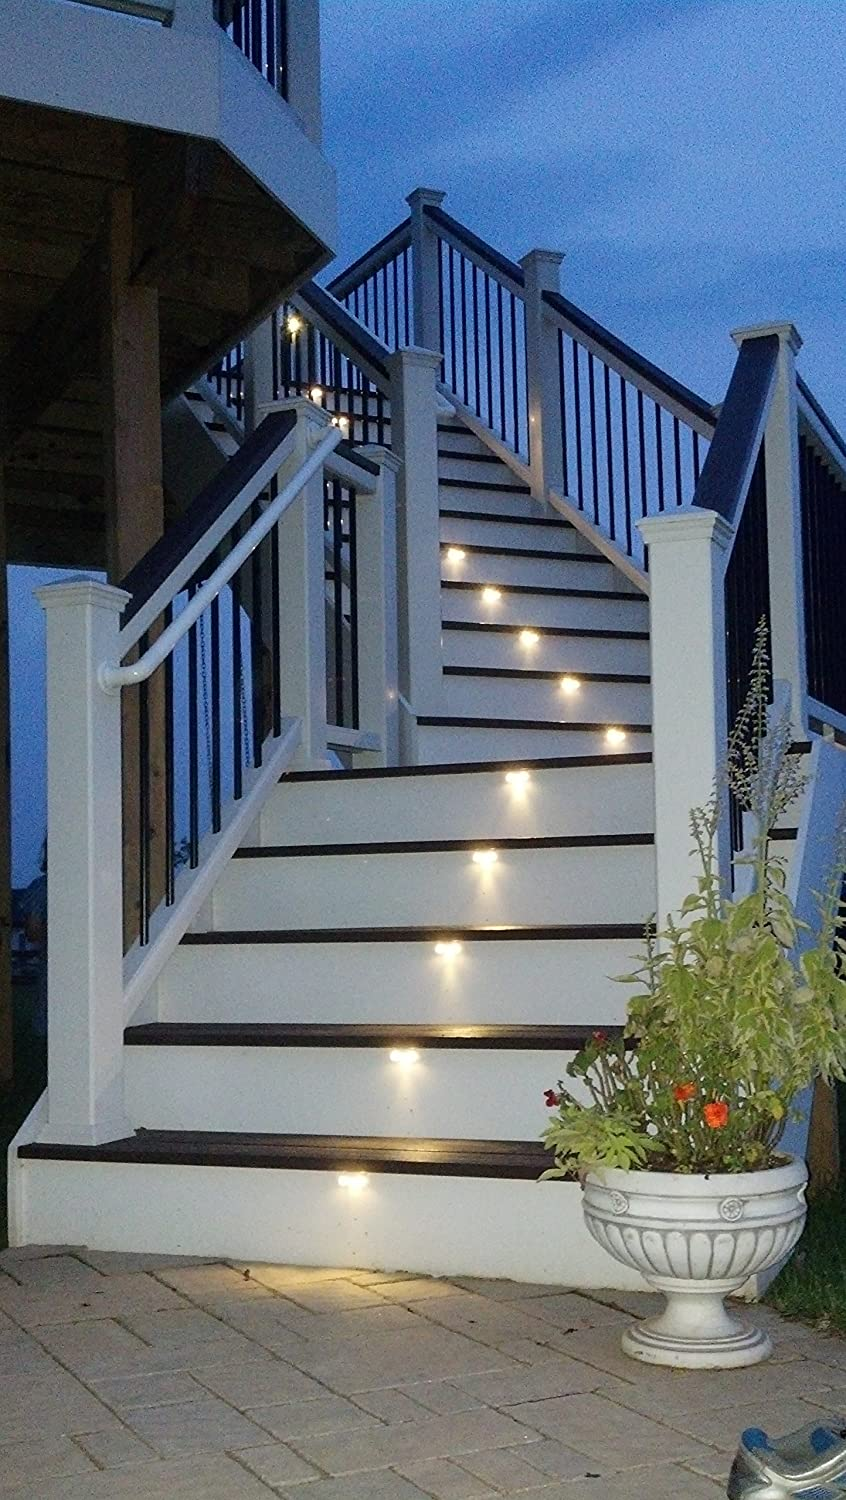 Black i-lighting SL 532 NB CW Modern Outdoor Stair Light Kit with Clear LED